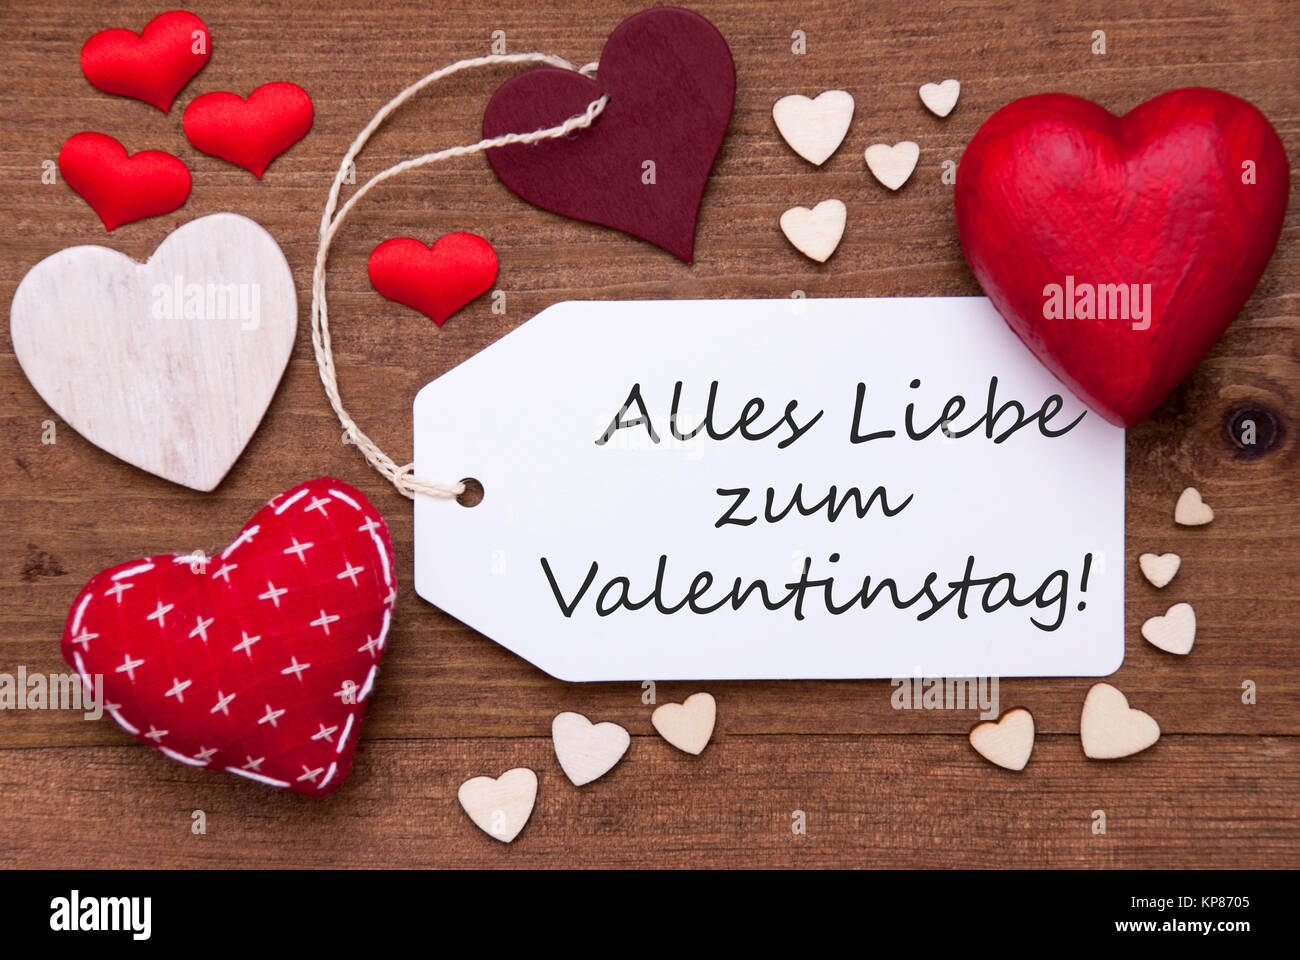 Label With Red Textile Hearts On Wooden Background. German Text Alles Liebe  Zum Valentinstag Means Happy Valentines Day. Retro Or Vintage Style